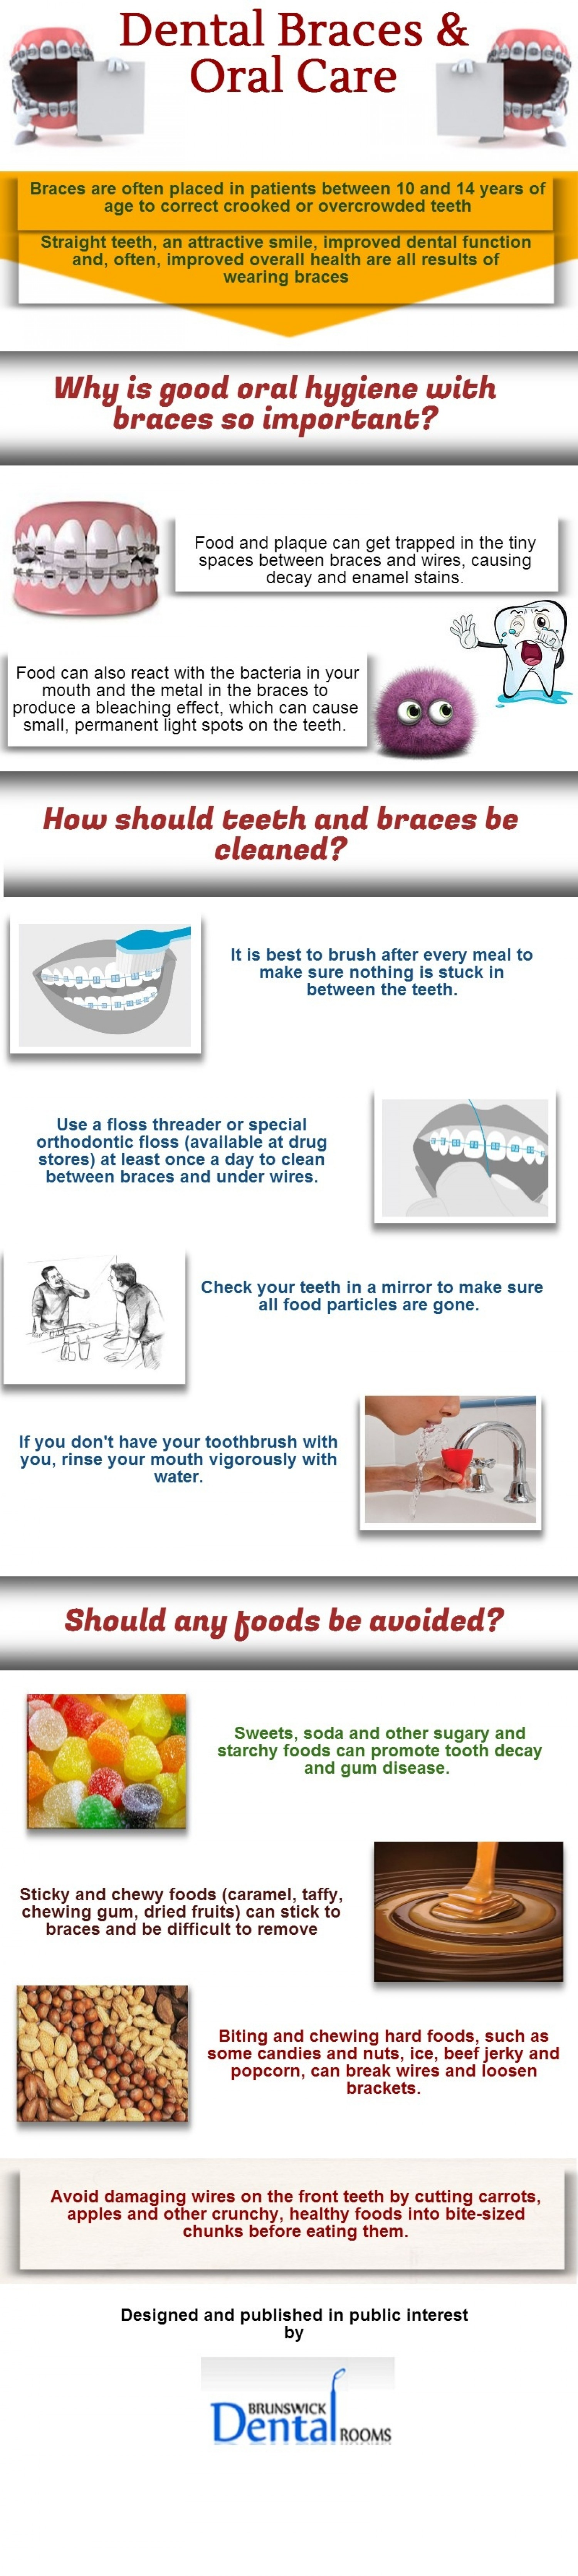 How to take care of your dental brace infographic